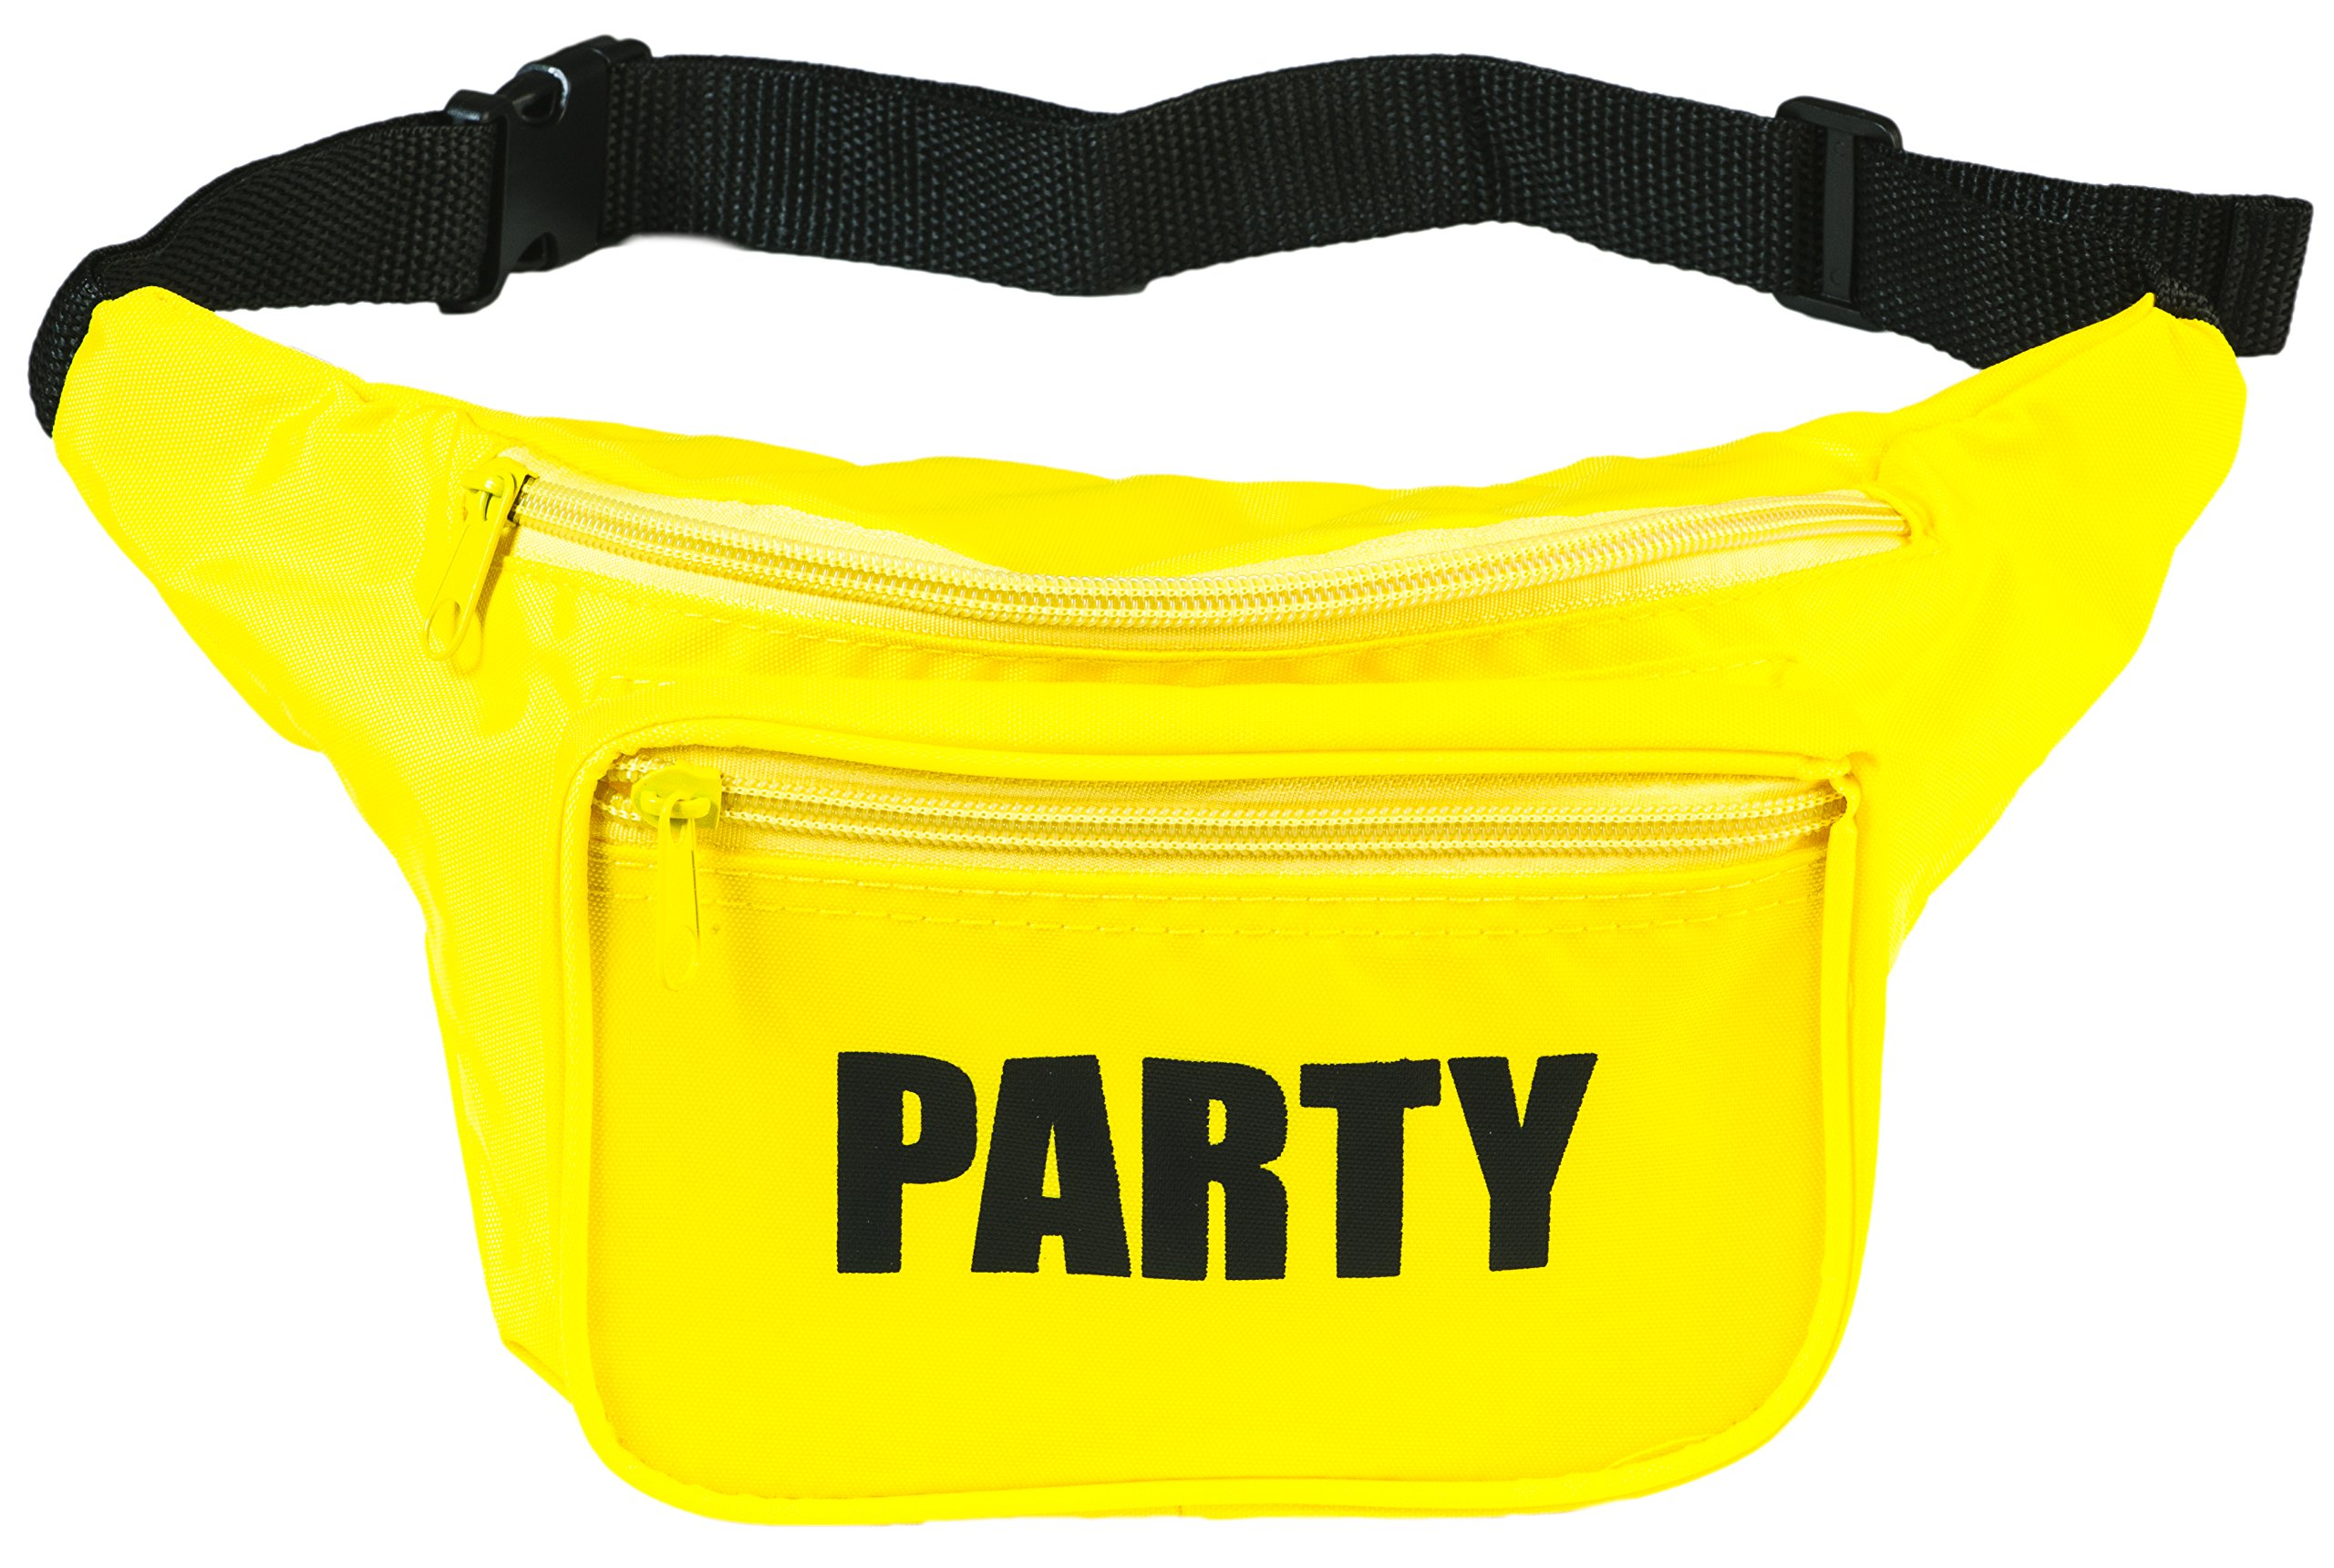 Funny Guy Mugs PARTY Fanny Pack, Yellow